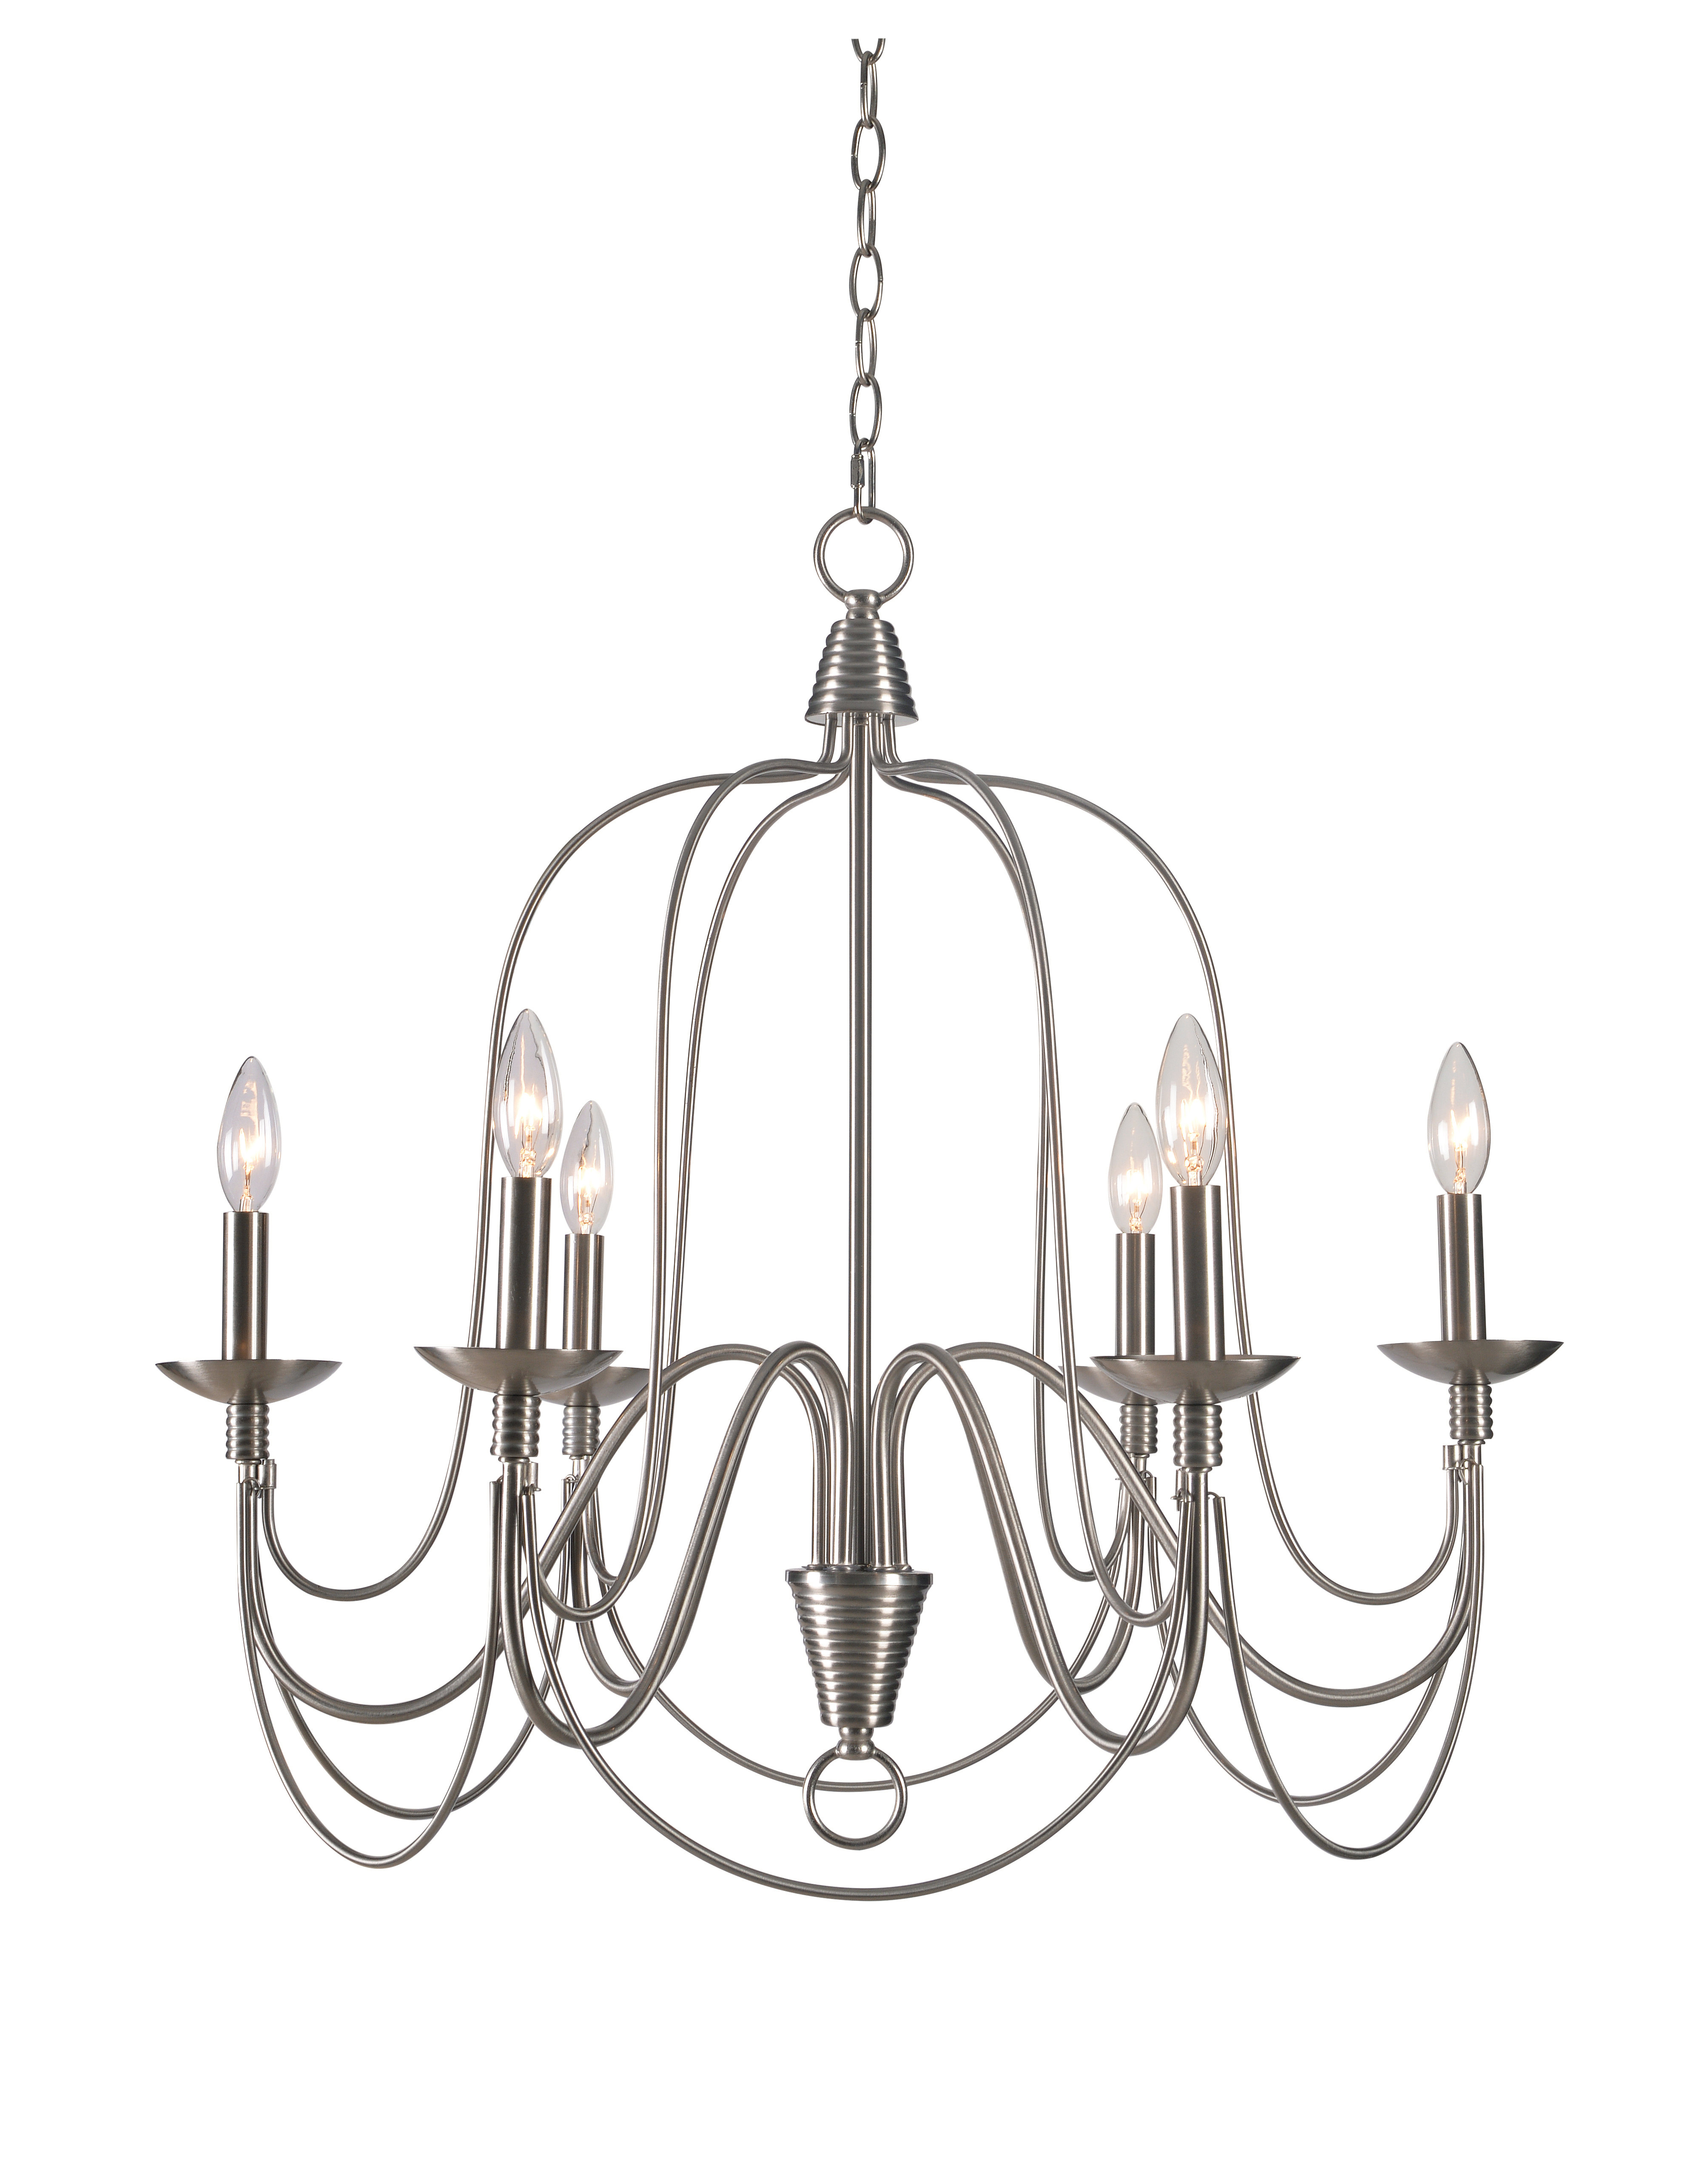 Kollman 6 Light Candle Style Chandelier Throughout Favorite Armande Candle Style Chandeliers (View 12 of 20)